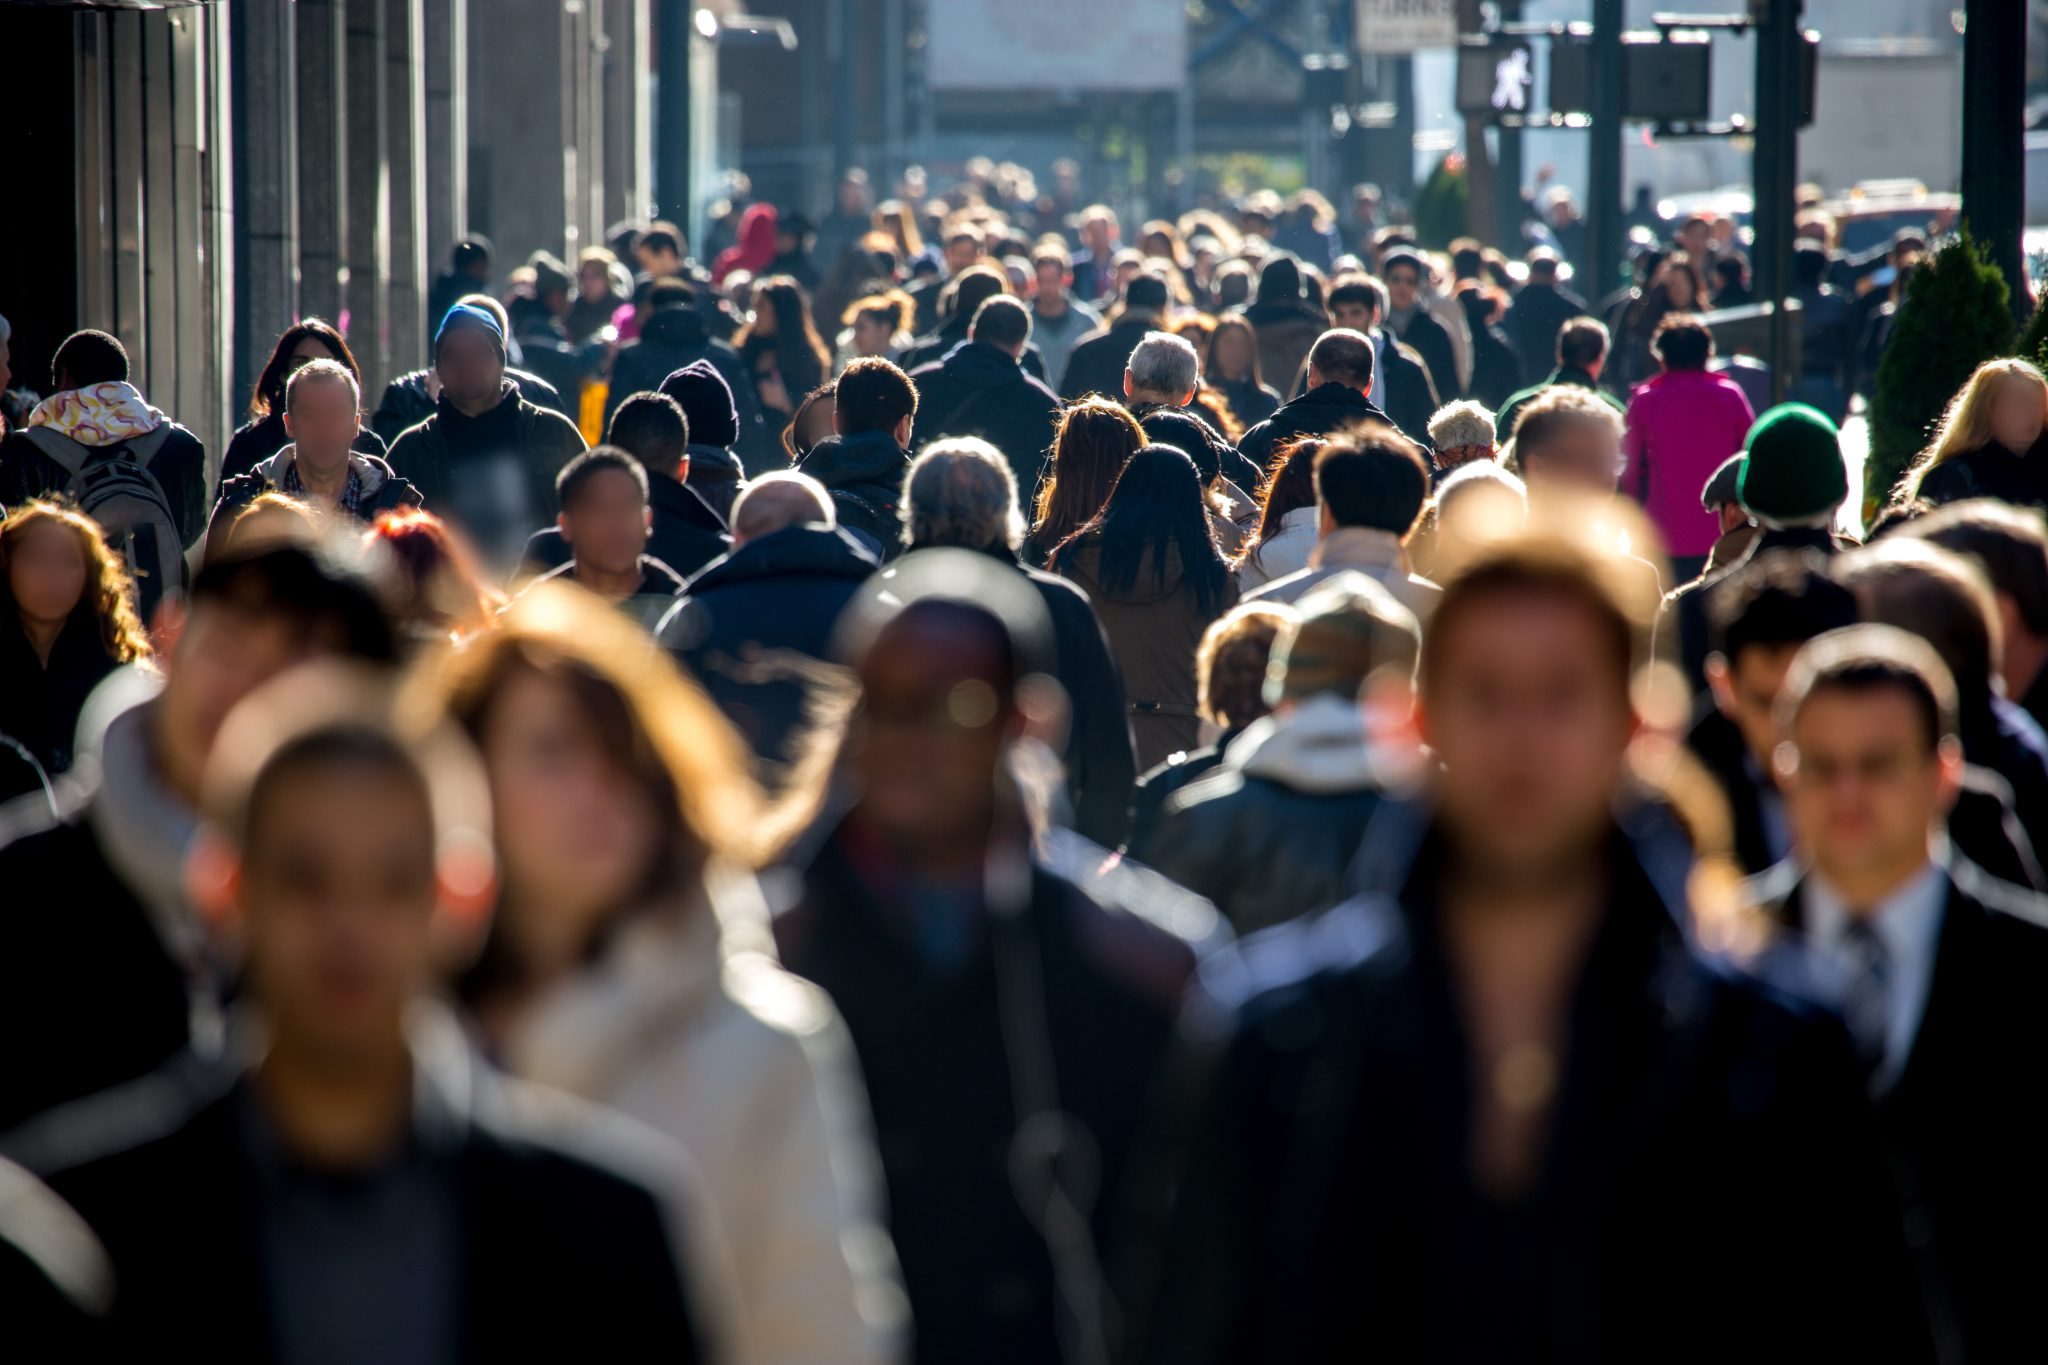 A public crowd in a city street, of which only a small number know about the PPI claims deadline.